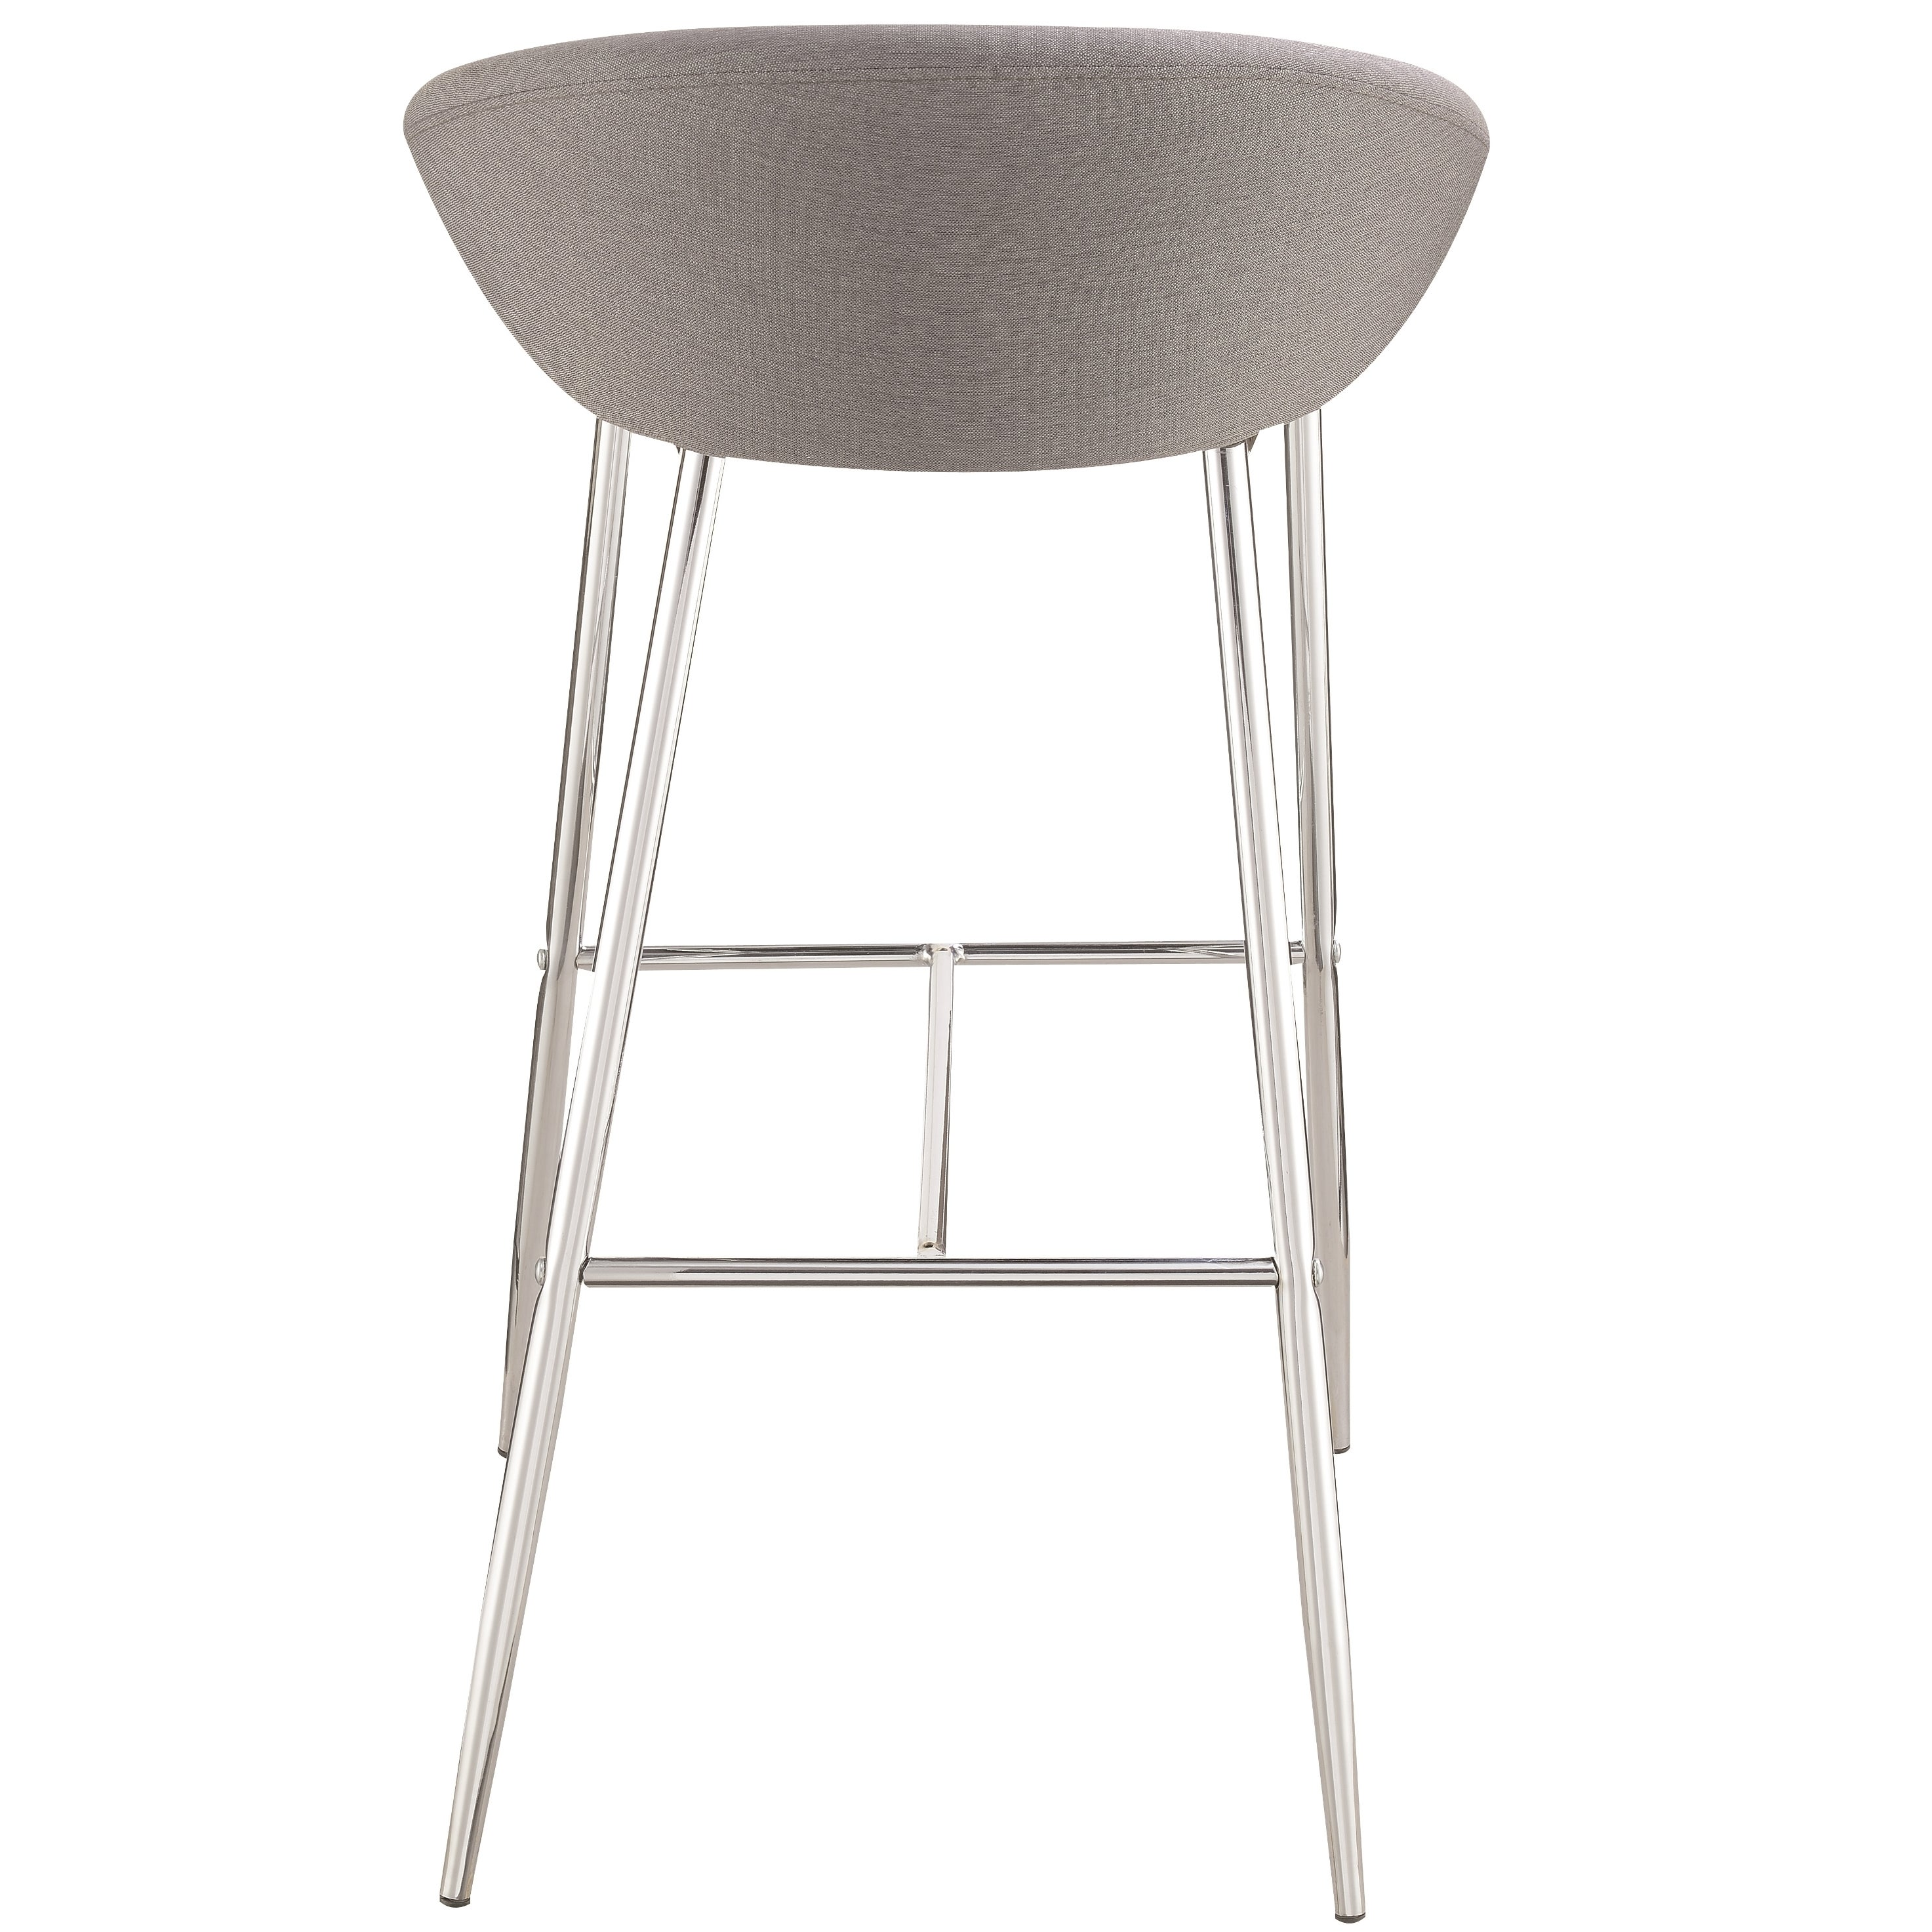 Modern Design Grey Woven Fabric Bar Stools With Sleek Chrome Base (Set Of  2)   Free Shipping Today   Overstock.com   23277928 Design Ideas